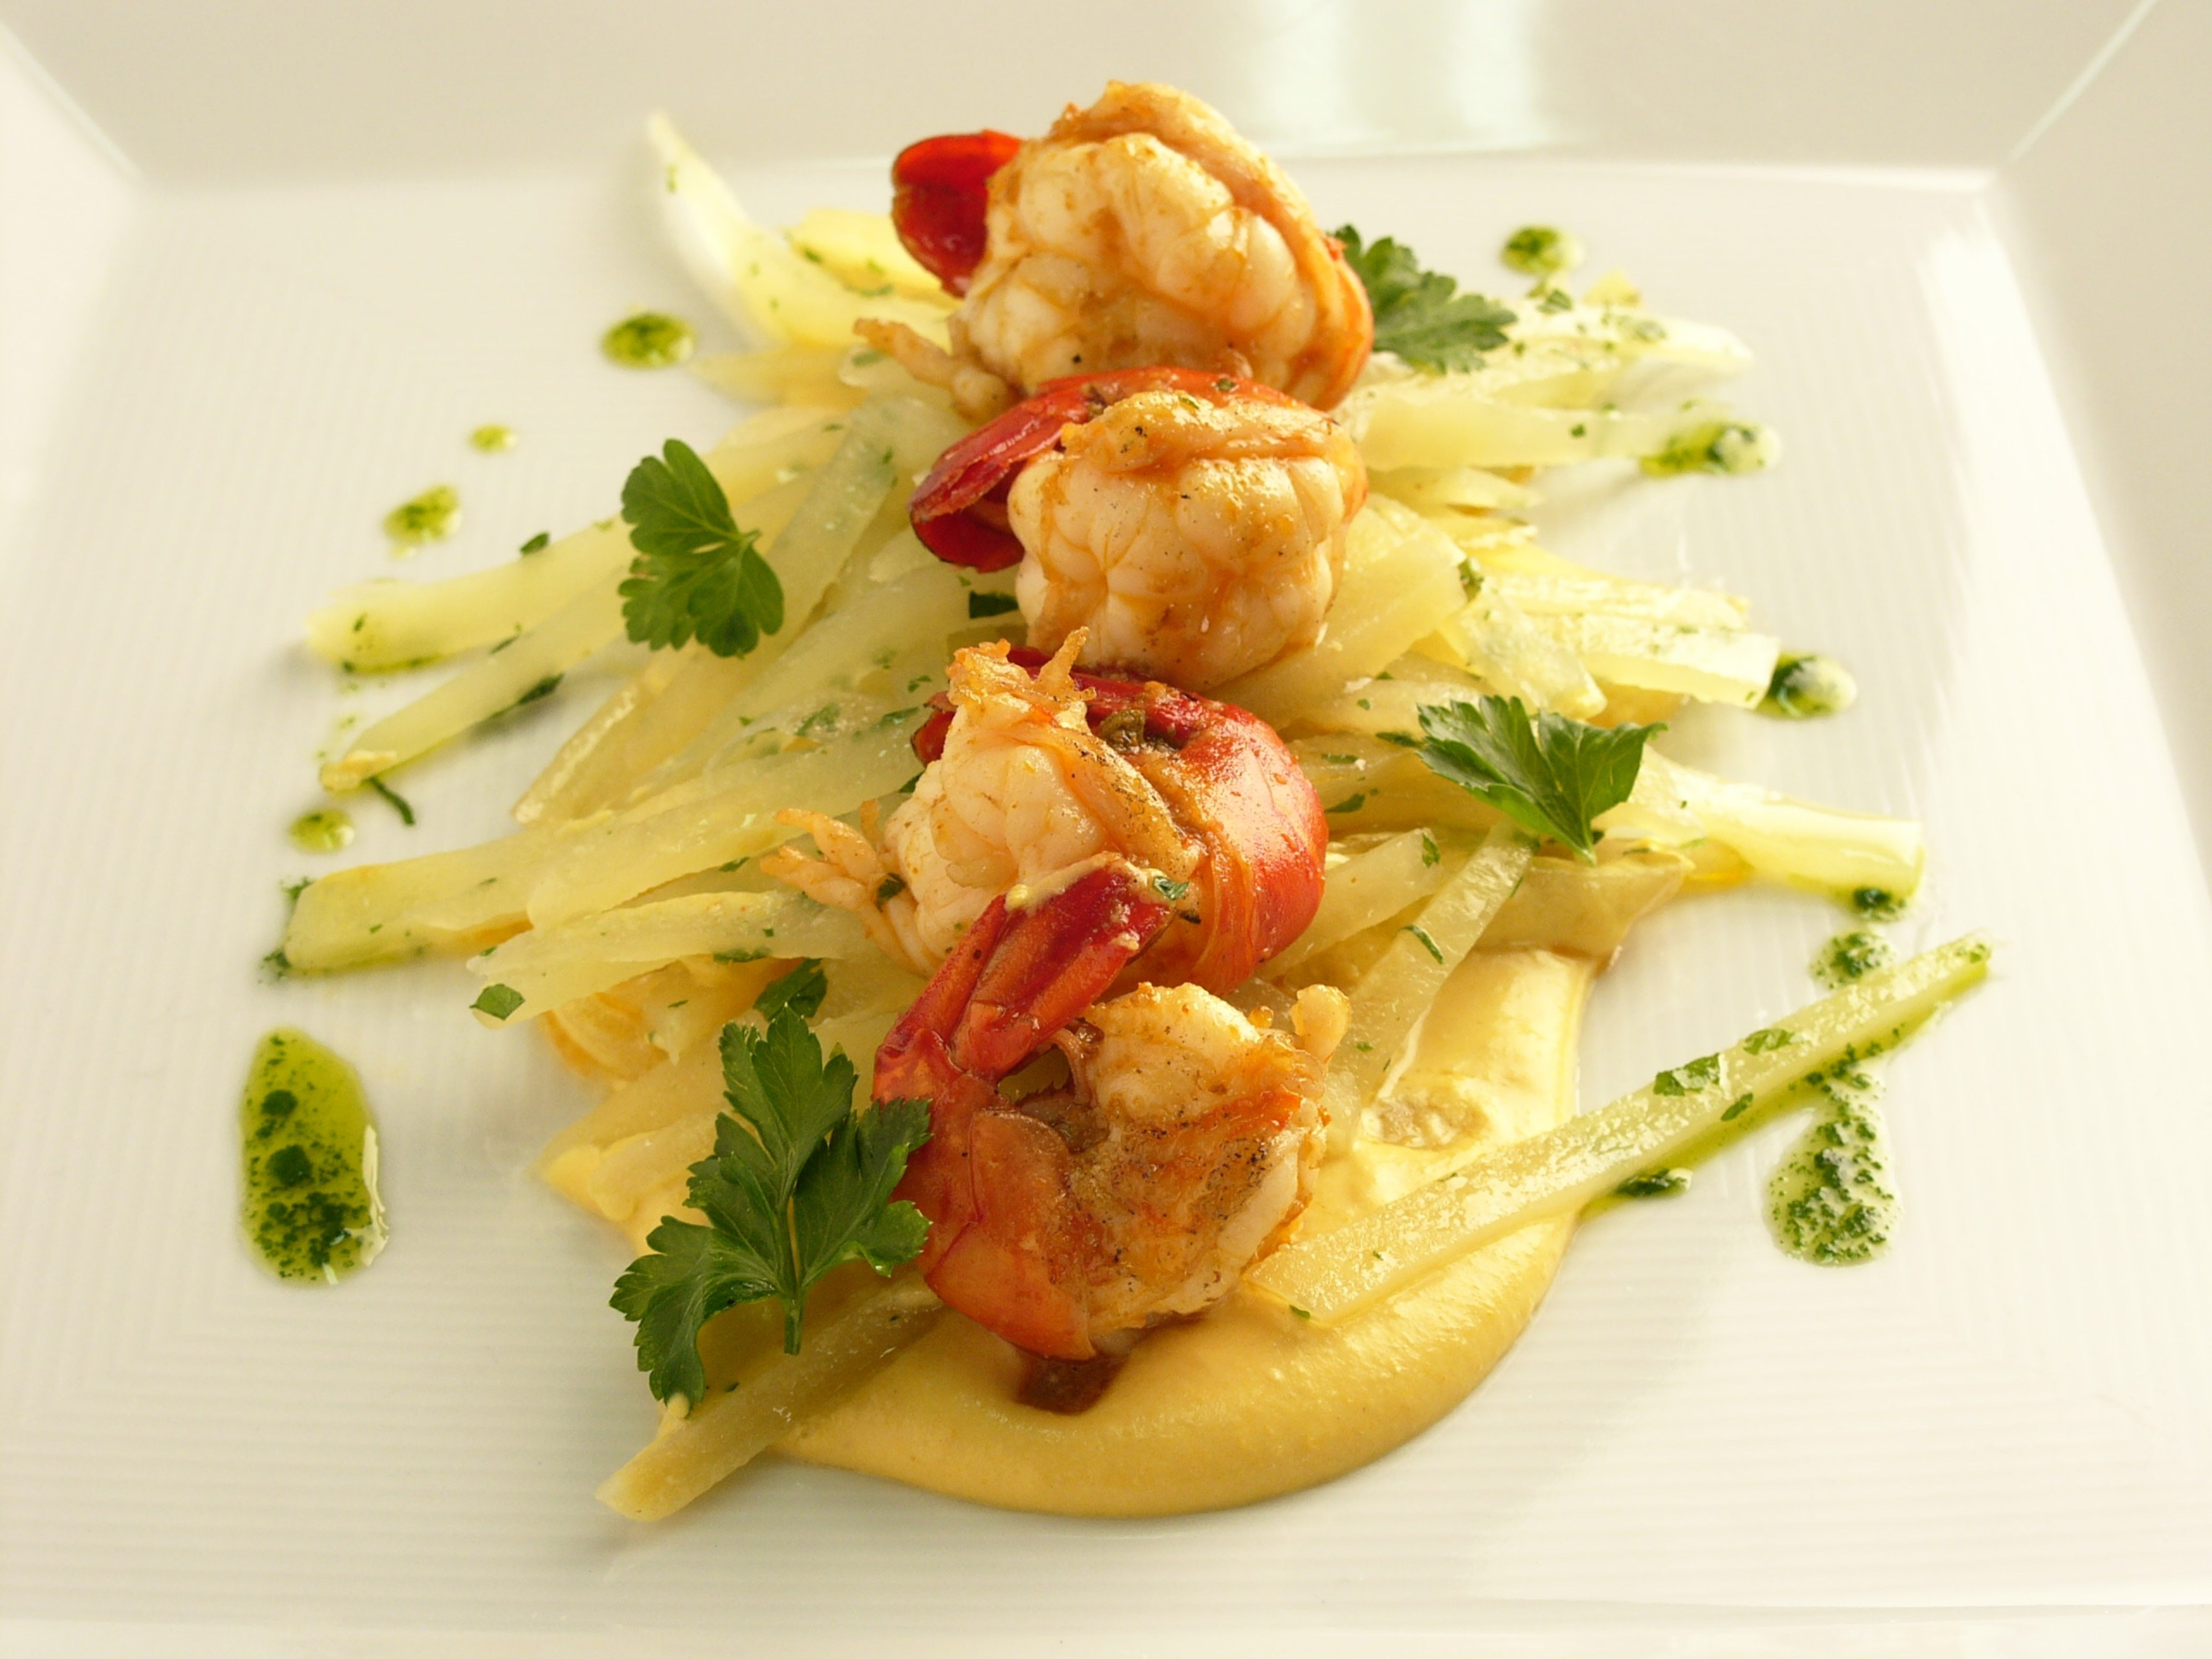 Peruvian shrimps with Huancaina sauce enjoy new food on every journey